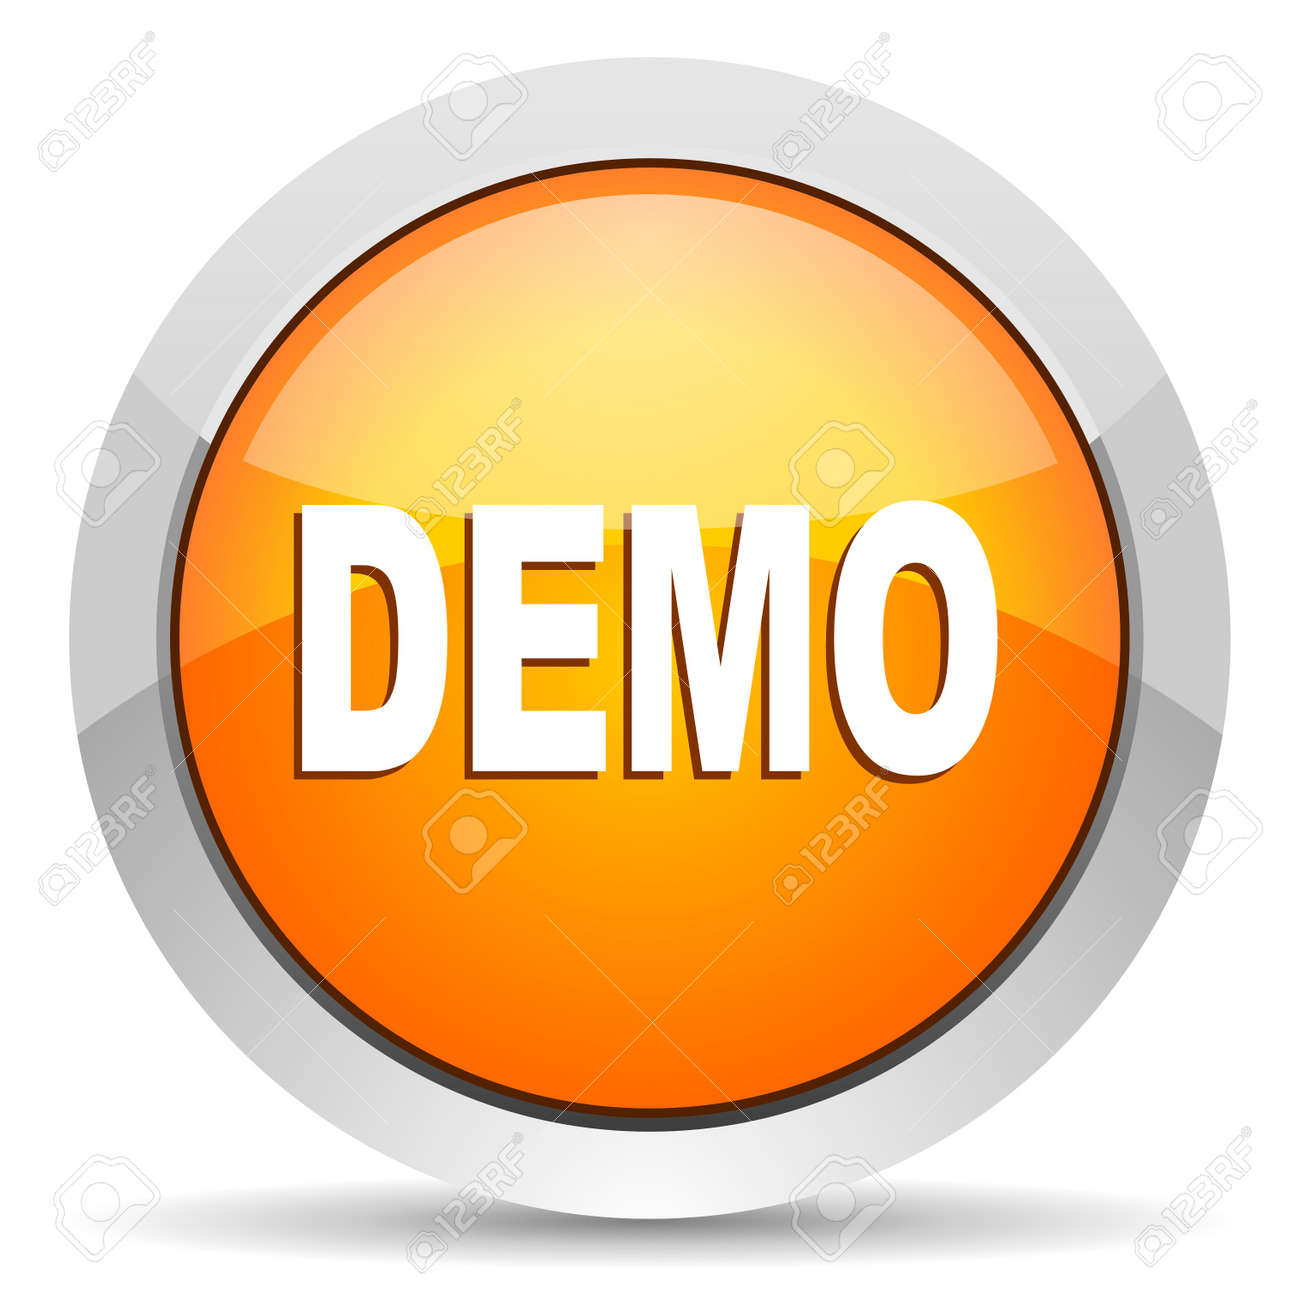 demo images stock pictures royalty free demo photos and stock